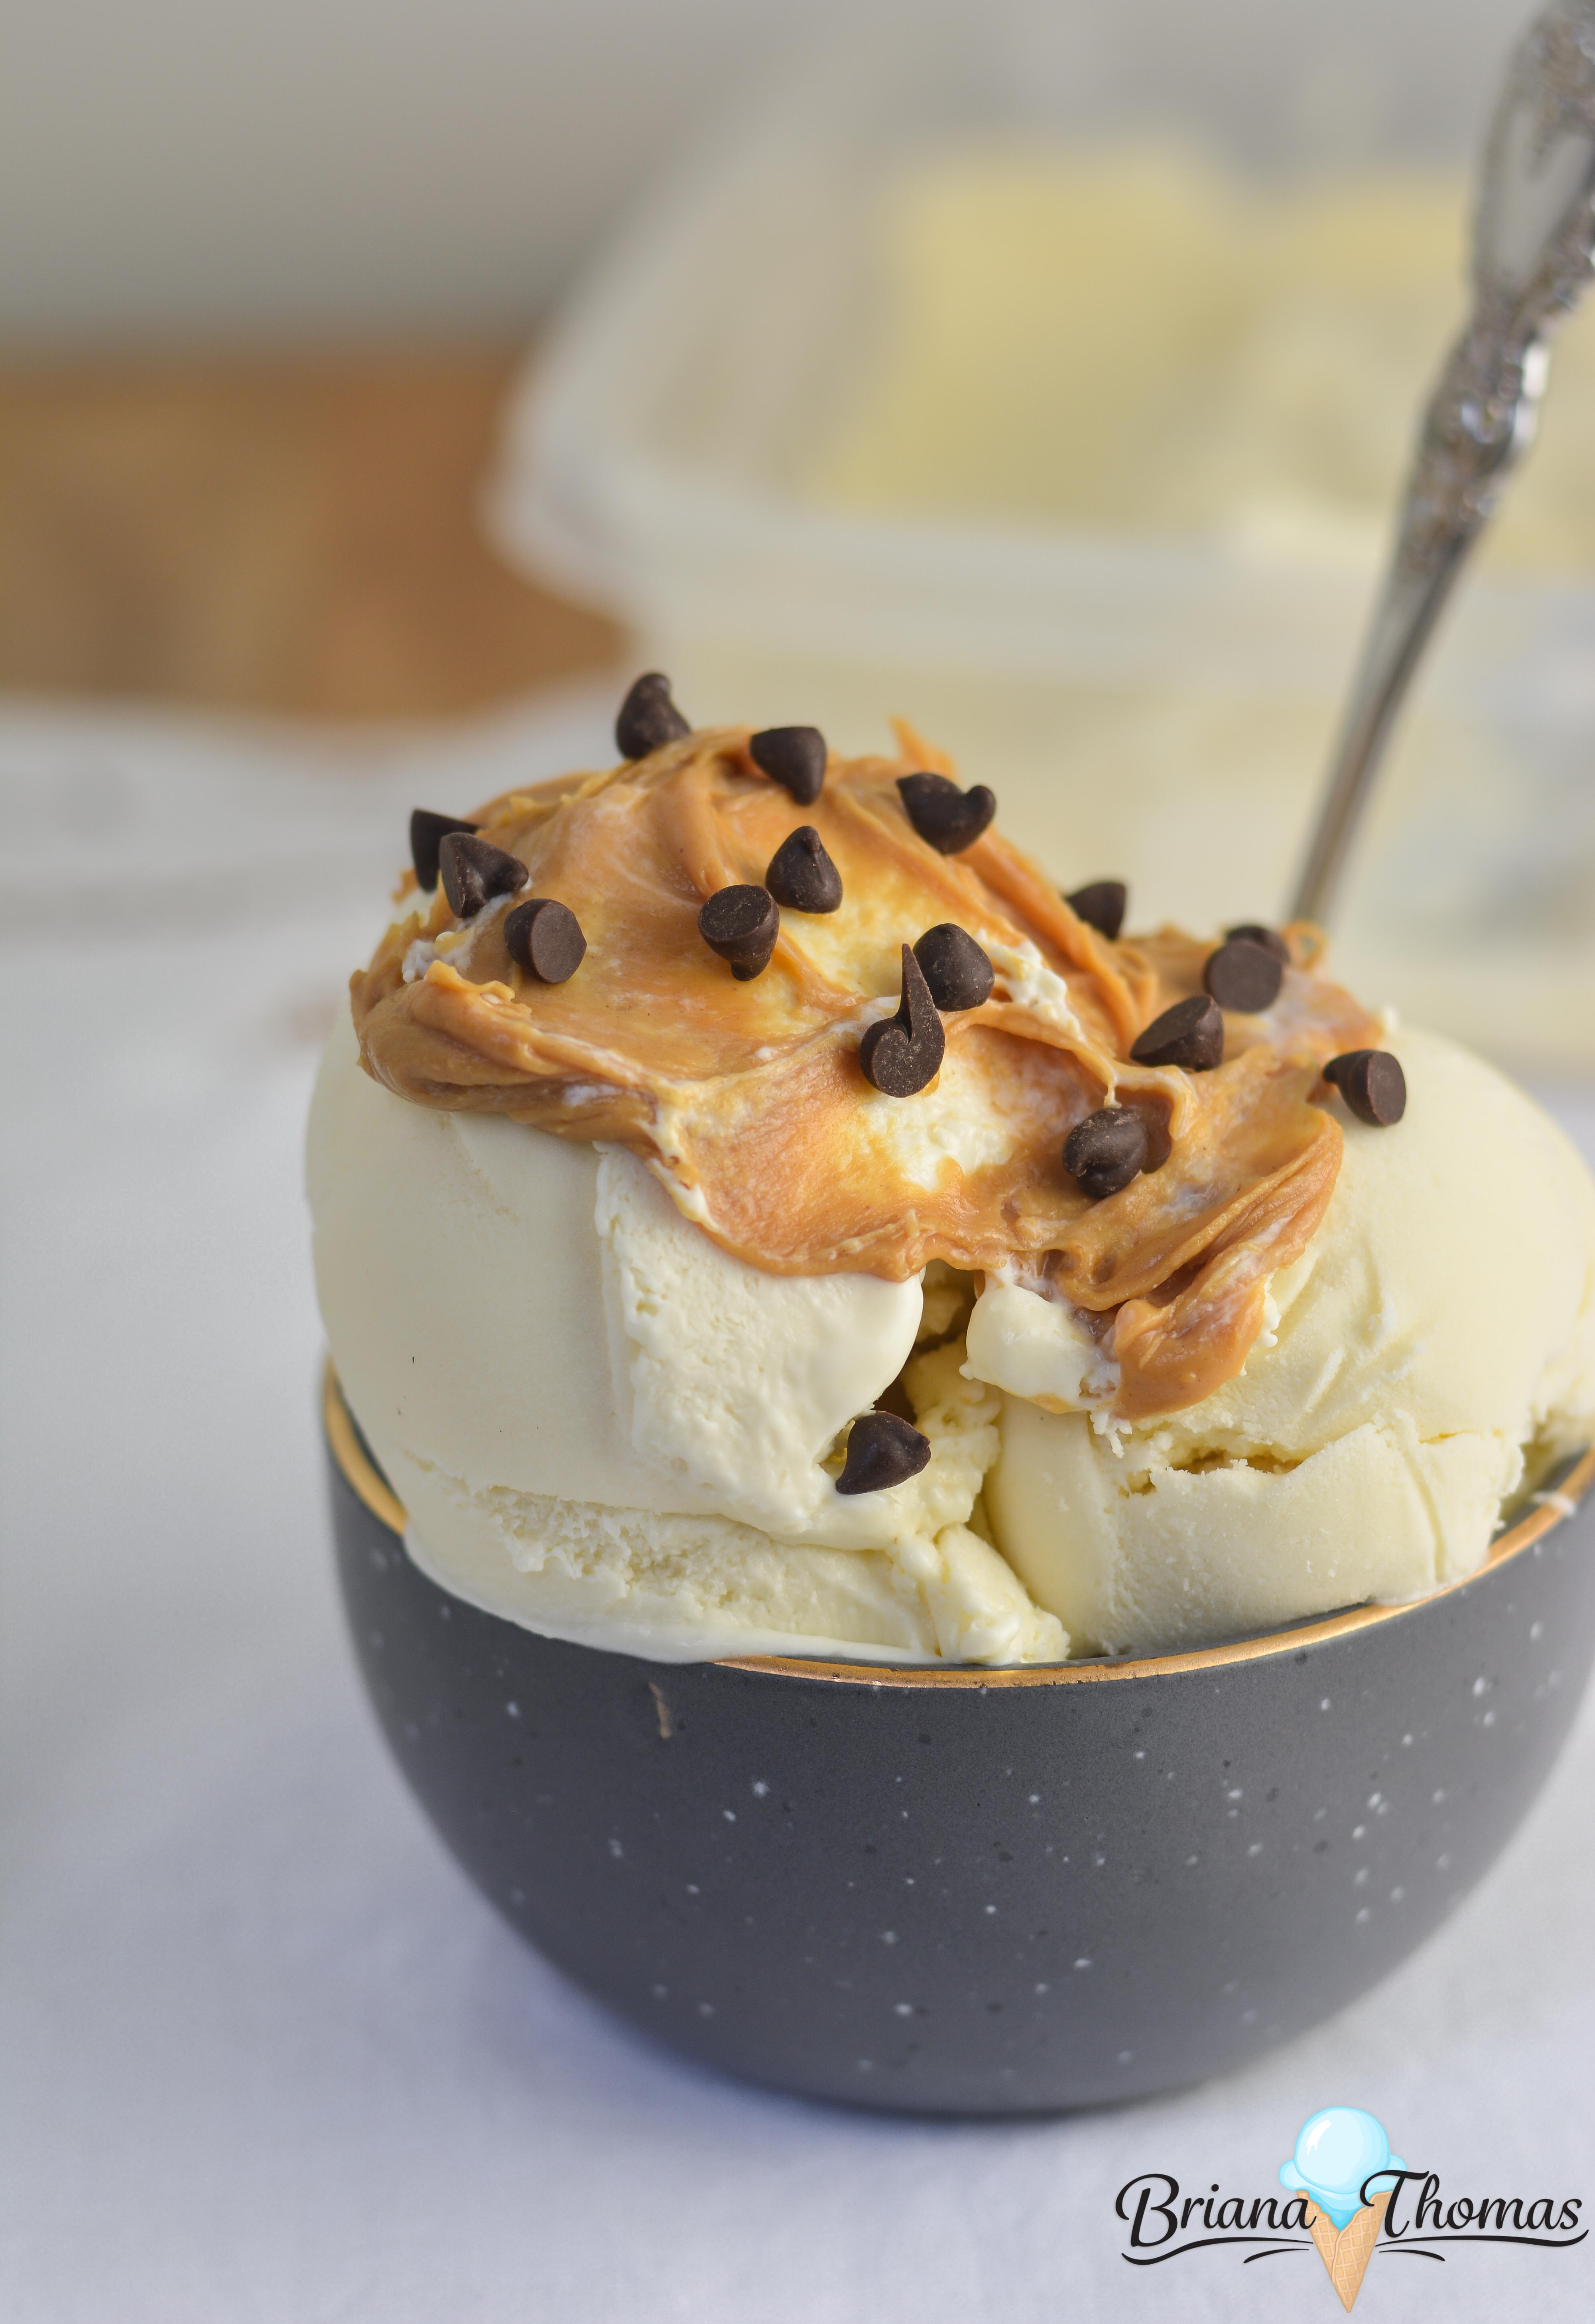 This Basic Vanilla Scoopable Ice Cream is my answer to Carb Smart, Halo Top, and all those convenient low-carb ice creams that you can enjoy right out of the freezer. They still have some questionable ingredients, but this recipe is totally THM friendly! THM S, low carb, sugar free, gluten/nut free options